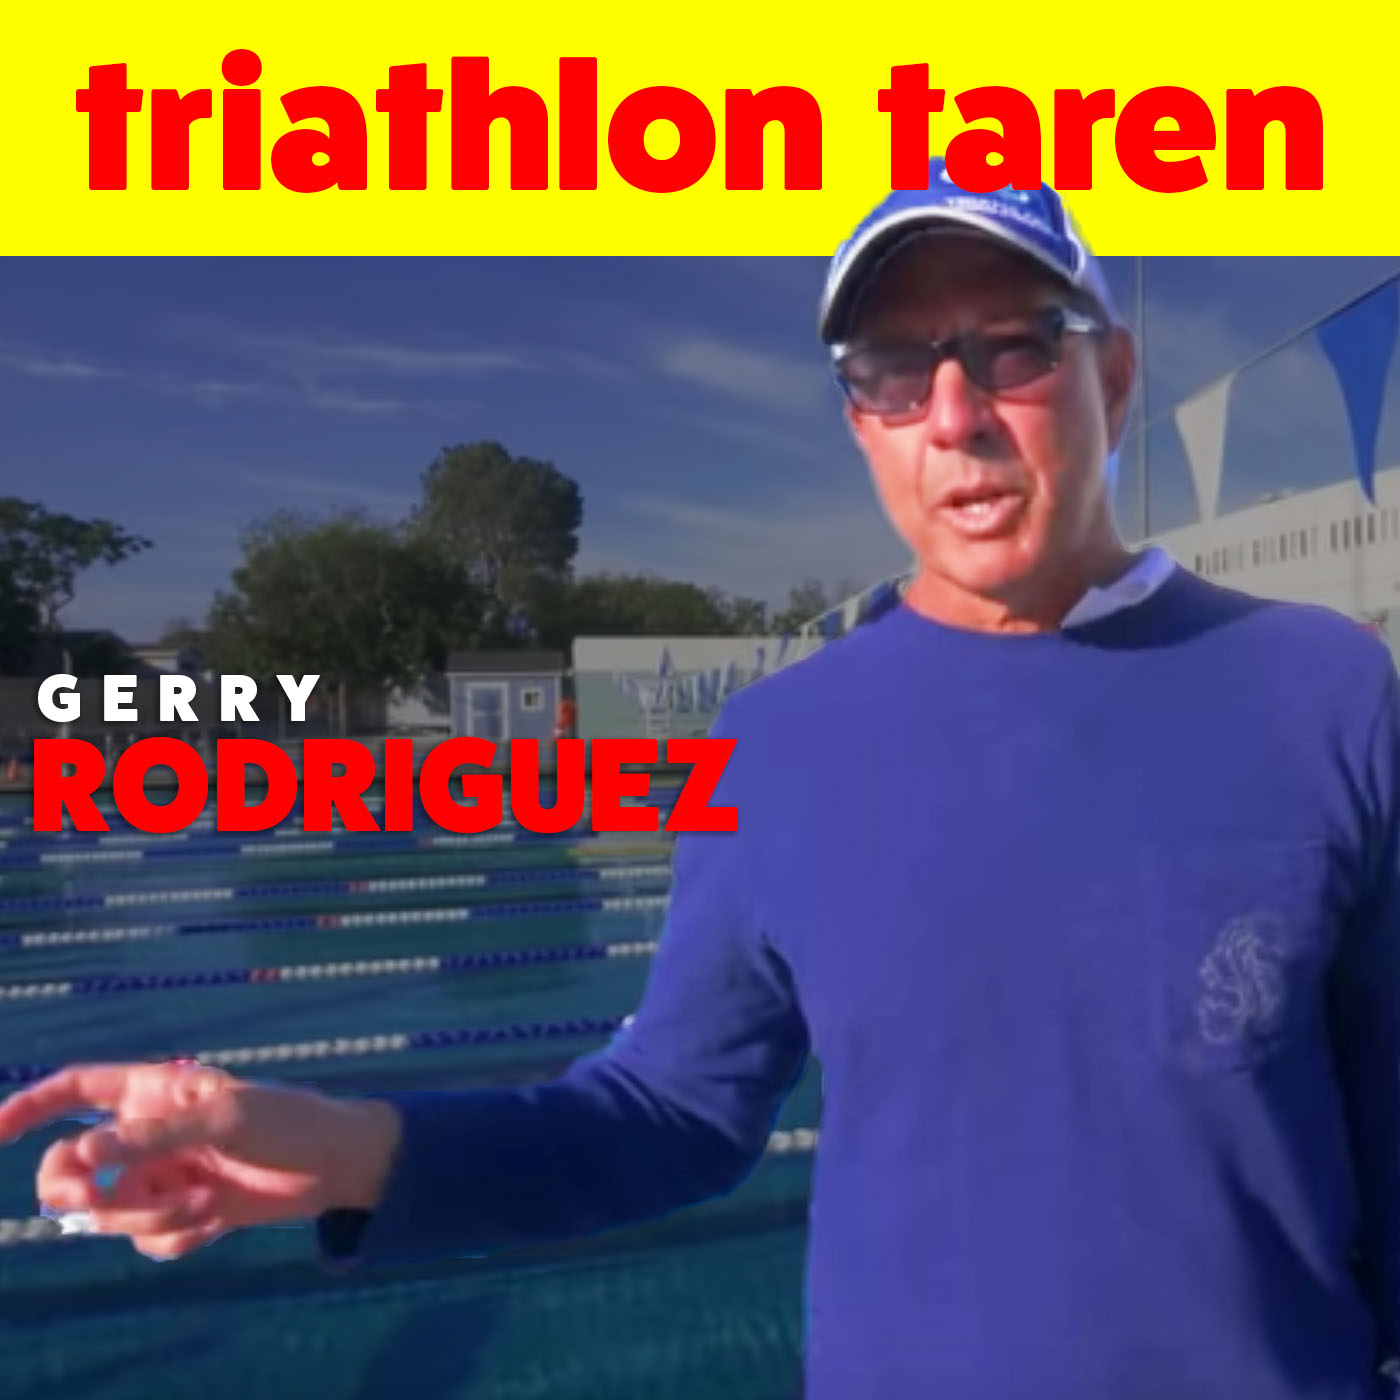 Exactly how triathletes should train for the swim | Part 2 with Gerry Rodriguez